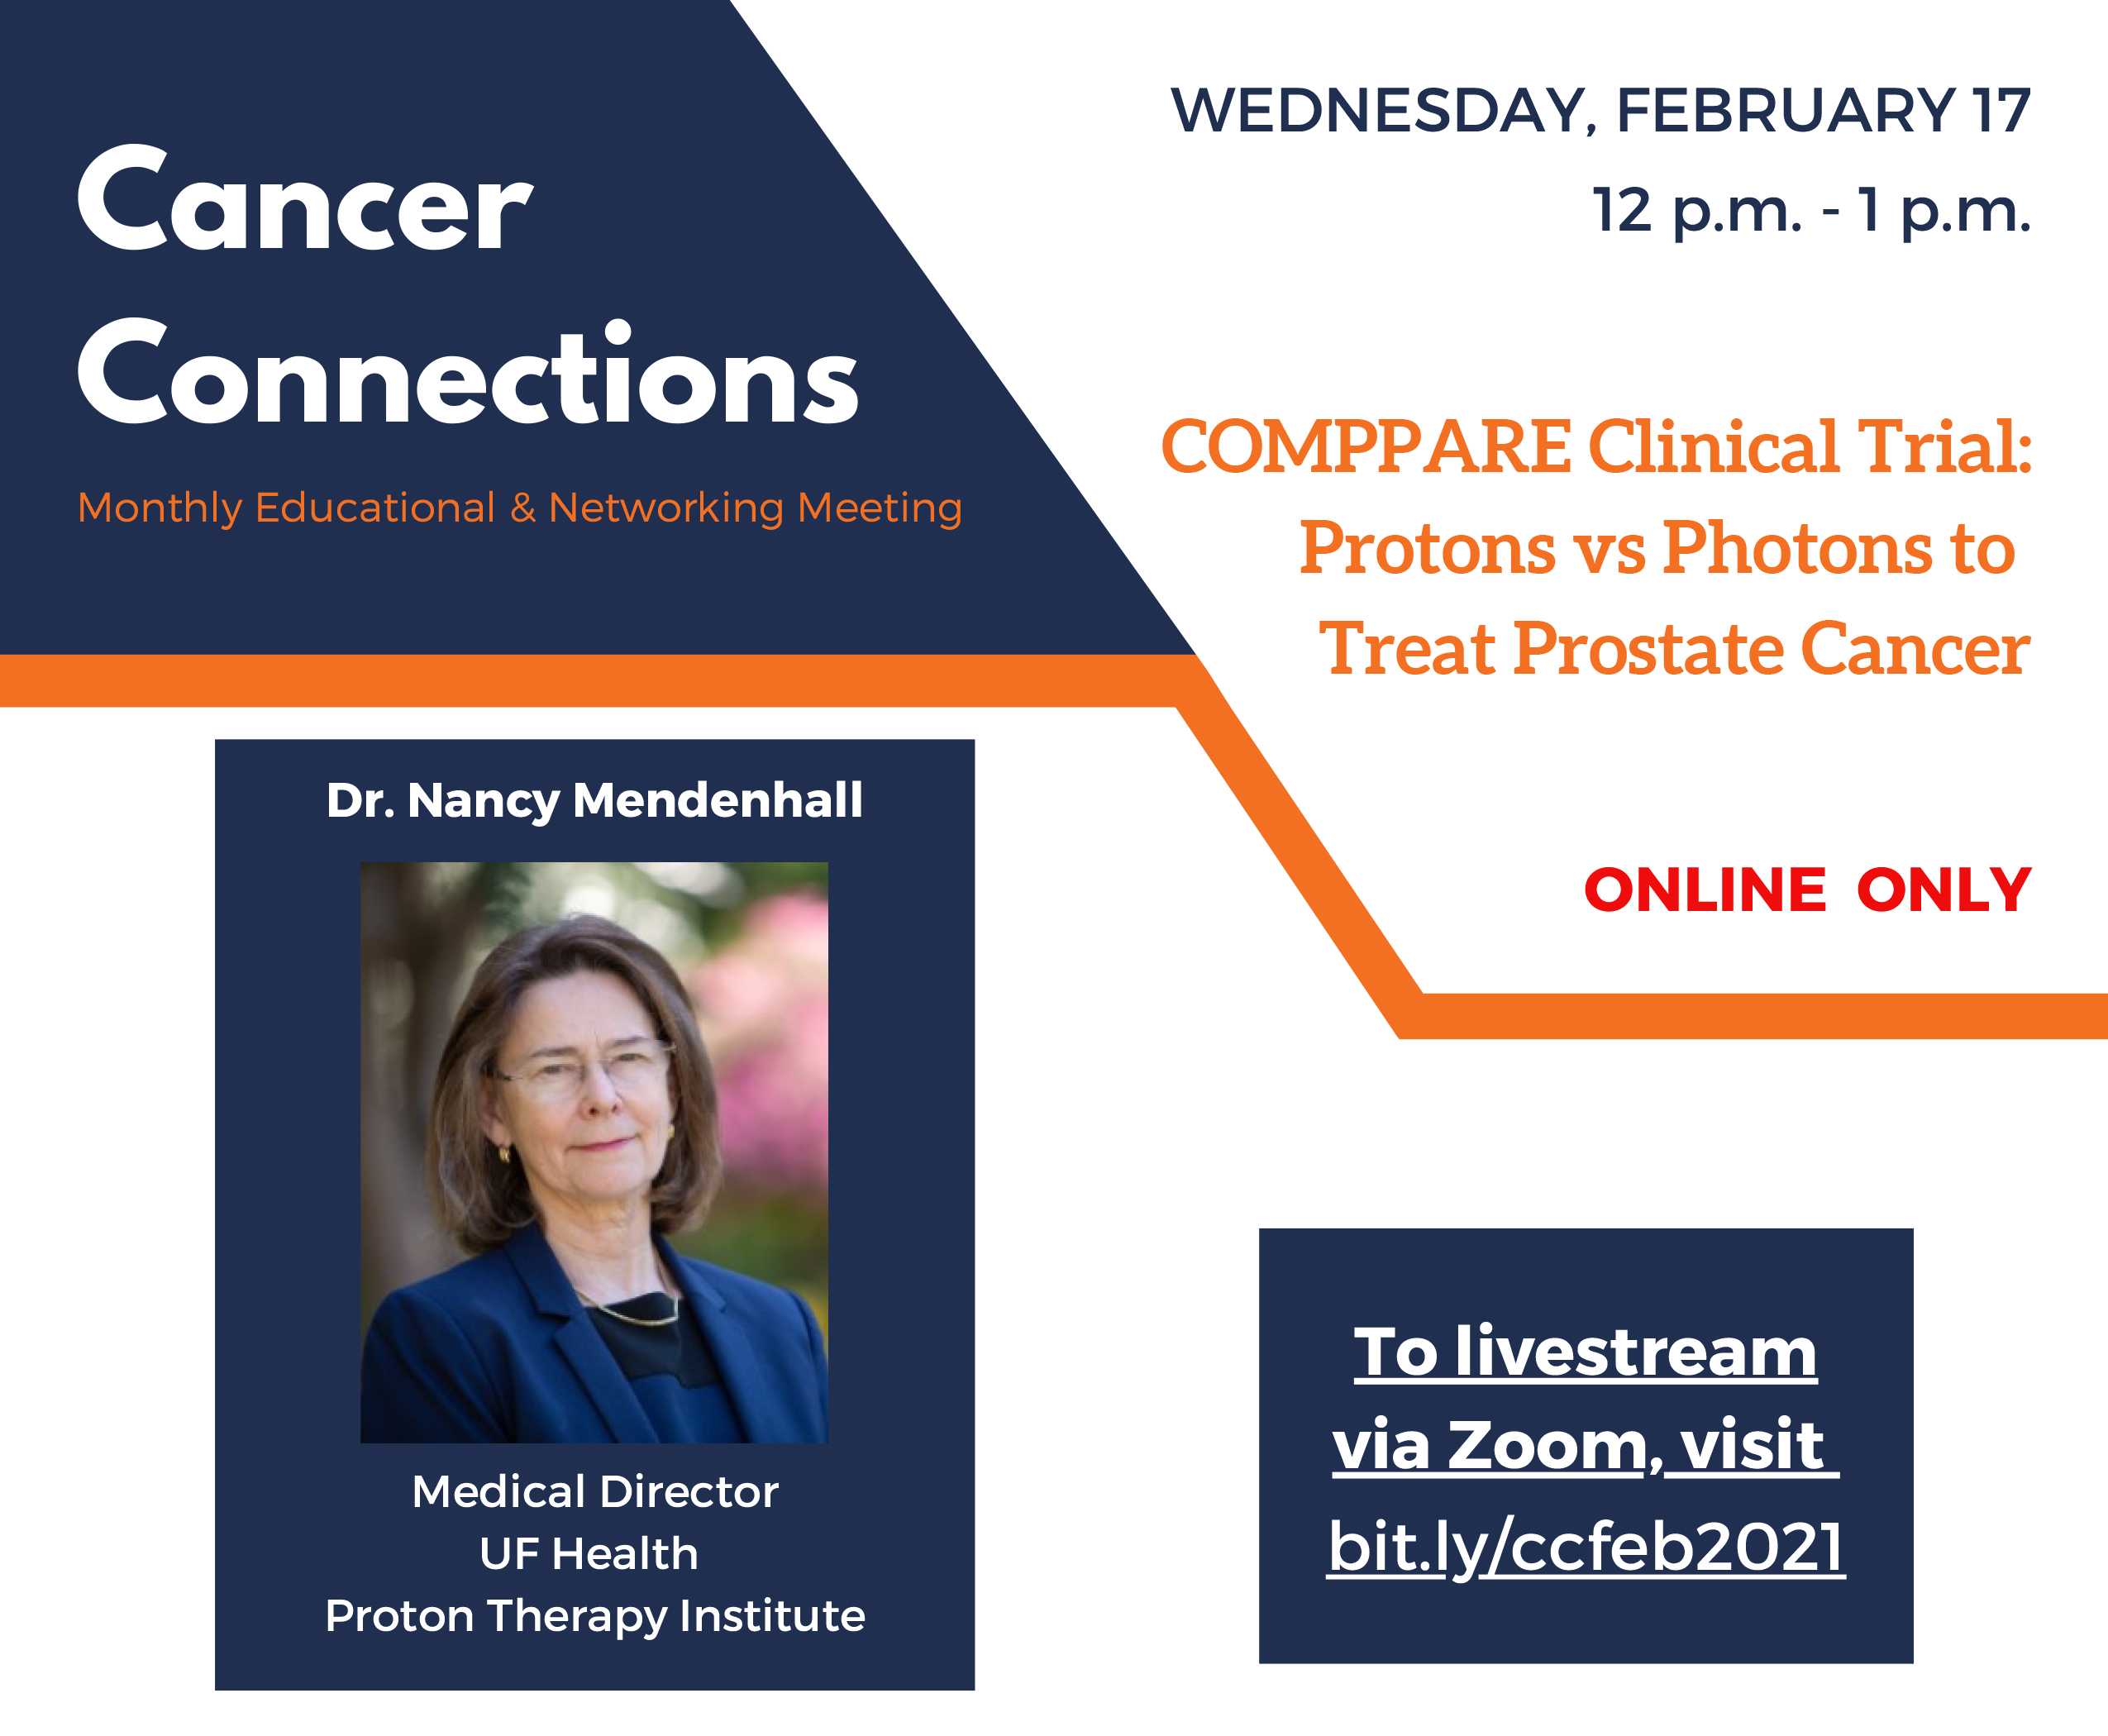 Cancer Connections Talk Feb 17